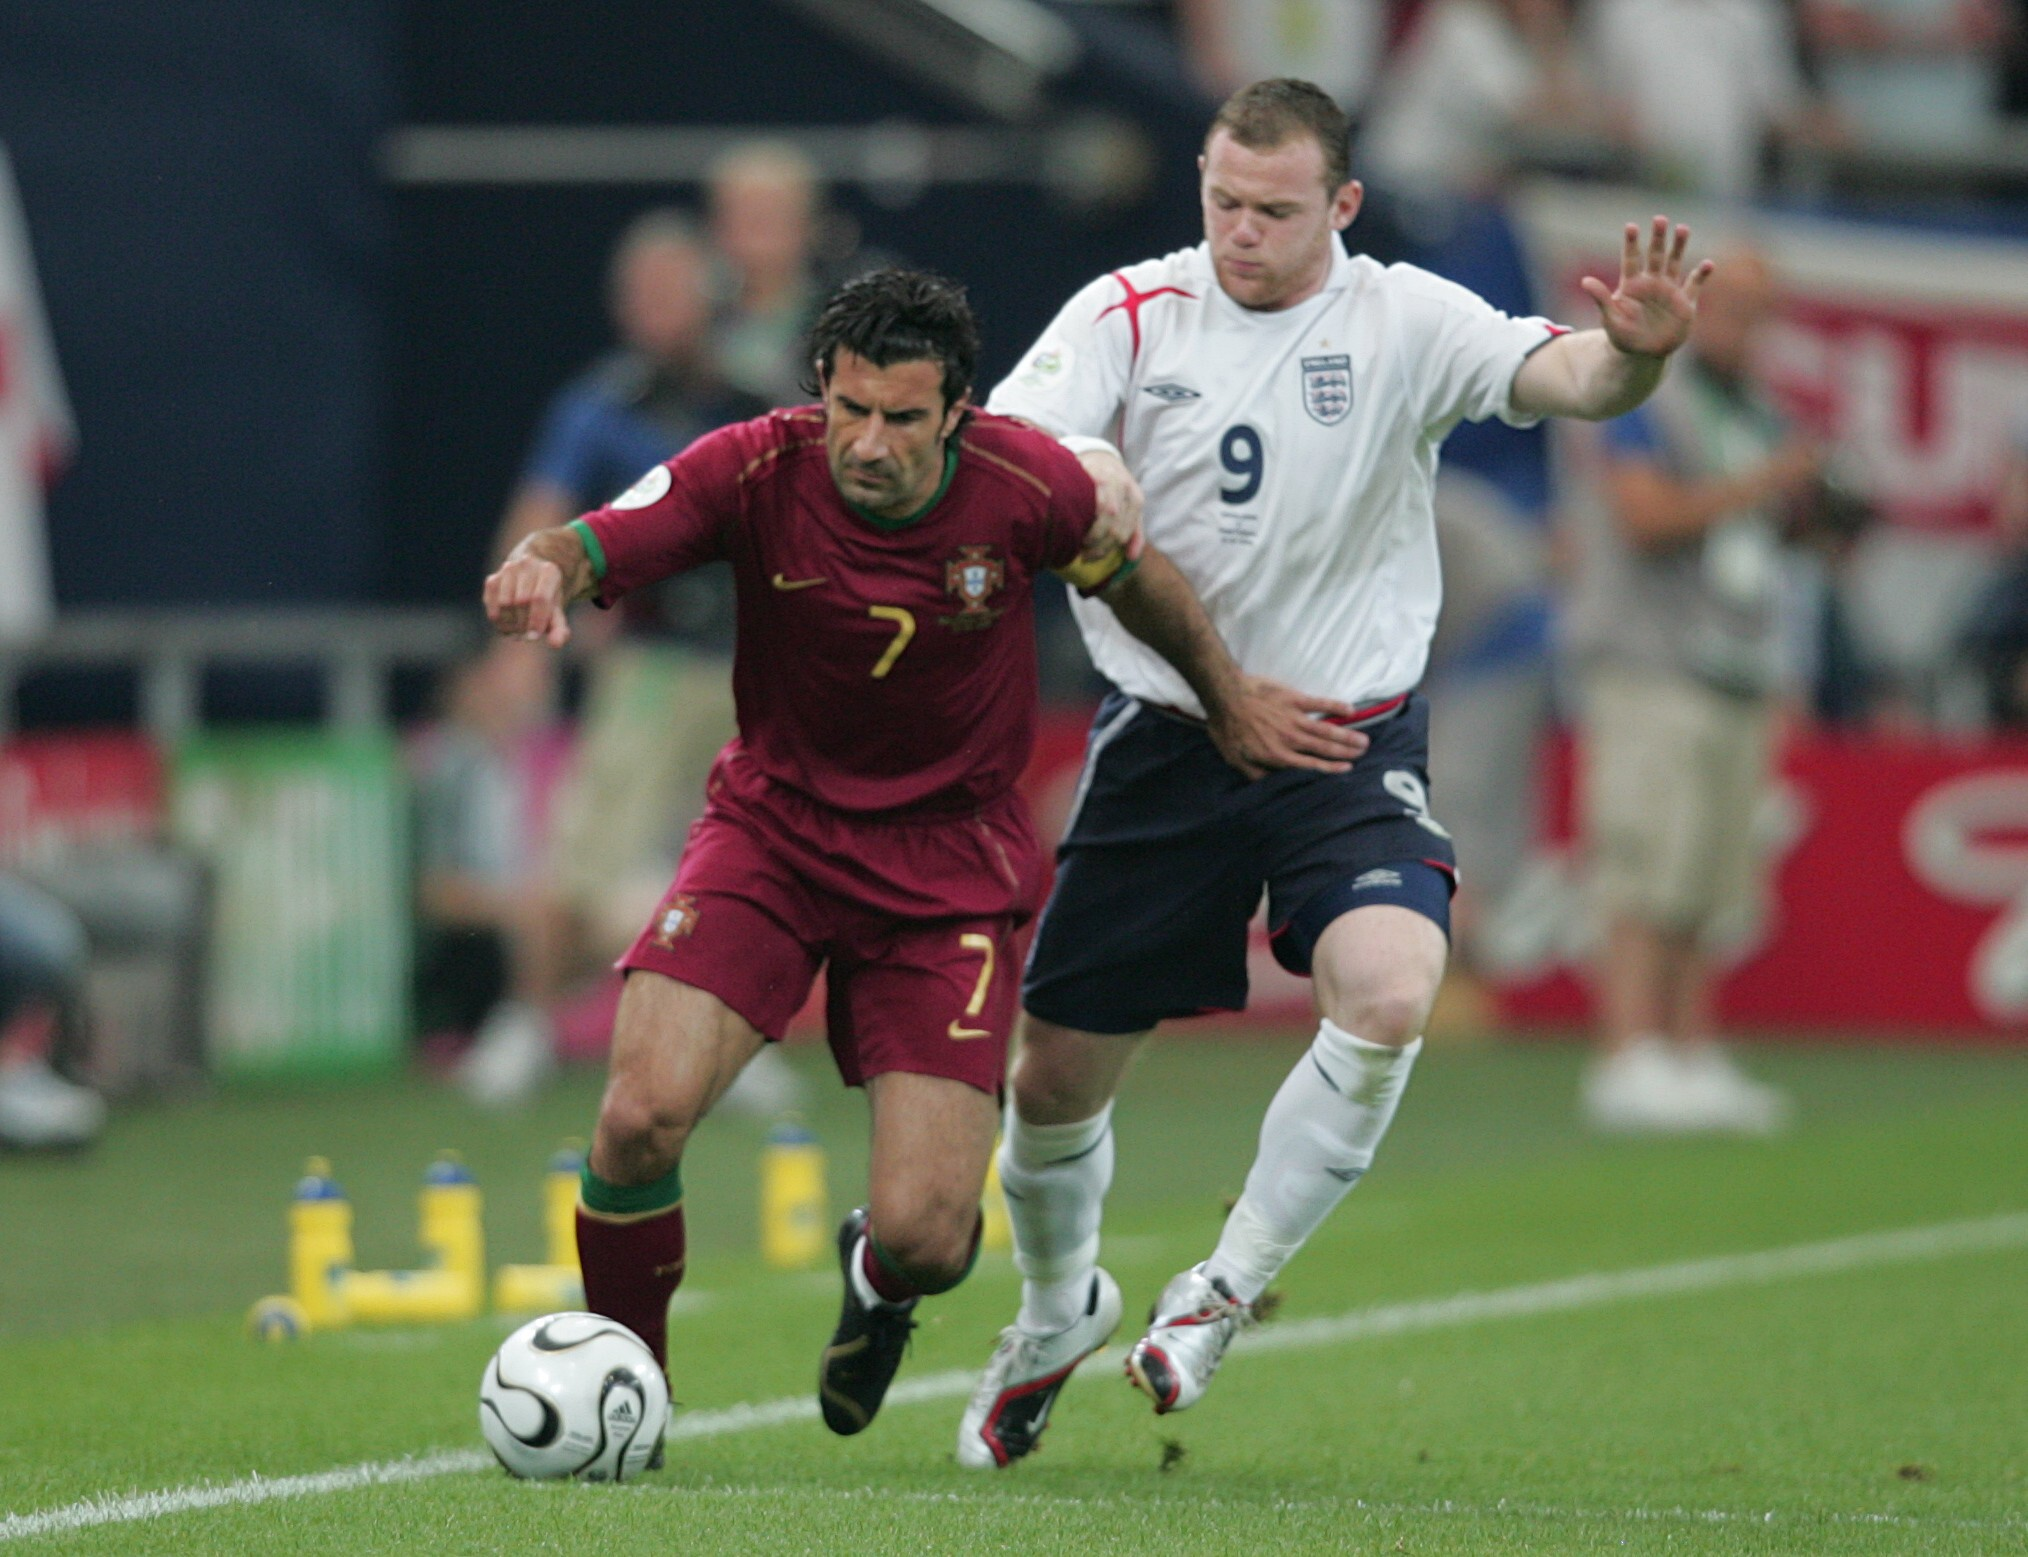 Real Madrid paid a world record transfer fee for Luis Figo in 2000